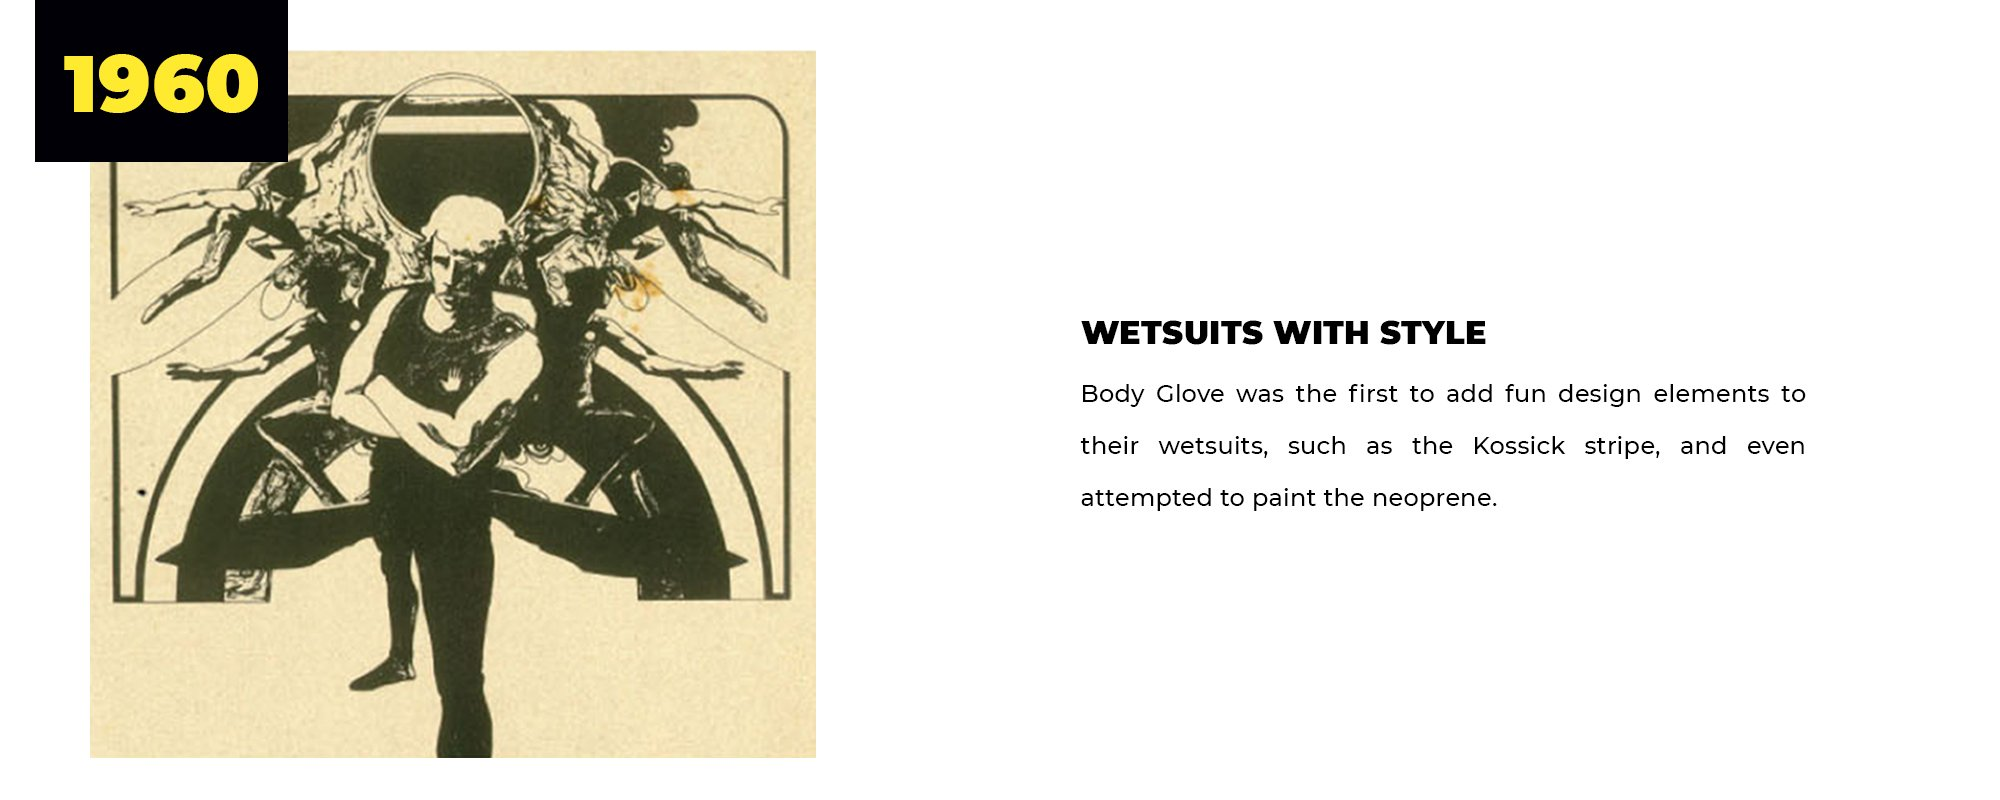 1960 | Wetsuits with Style | Body Glove was the first to add fun design elements to their wetsuits, such as the Kossick stripe, and even attempted to paint the neoprene.